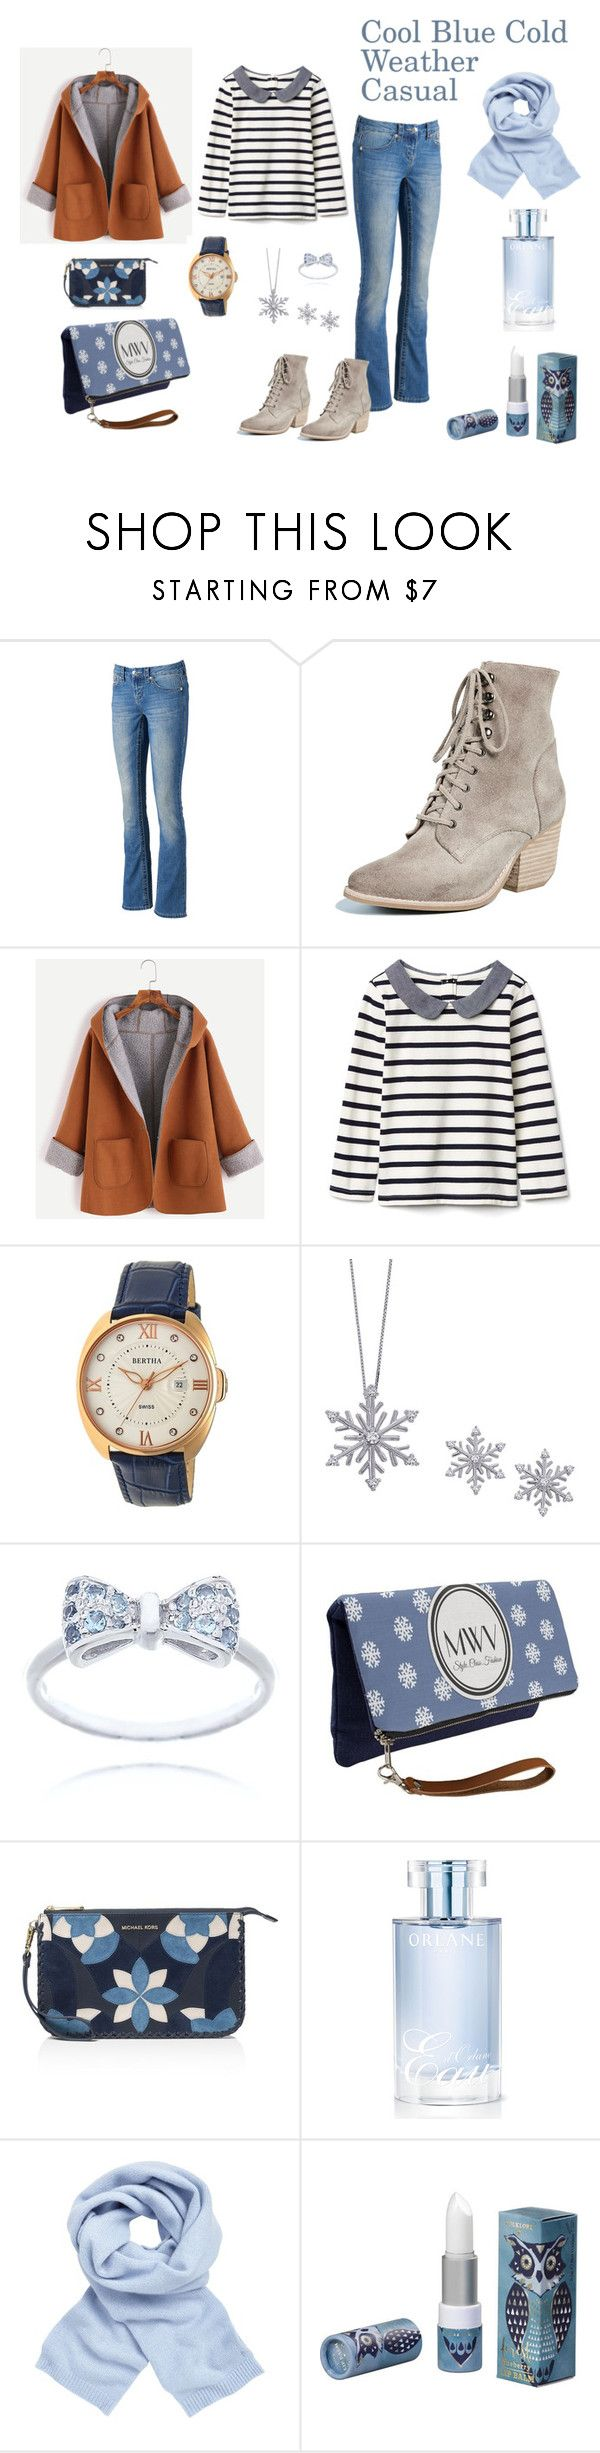 """""""Cool Blue Casual- Cold Weather Style"""" by rebeccadavisblogger on Polyvore featuring Seven7 Jeans, Jeffrey Campbell, Bertha, Splendid, MICHAEL Michael Kors, Orlane and John Lewis"""